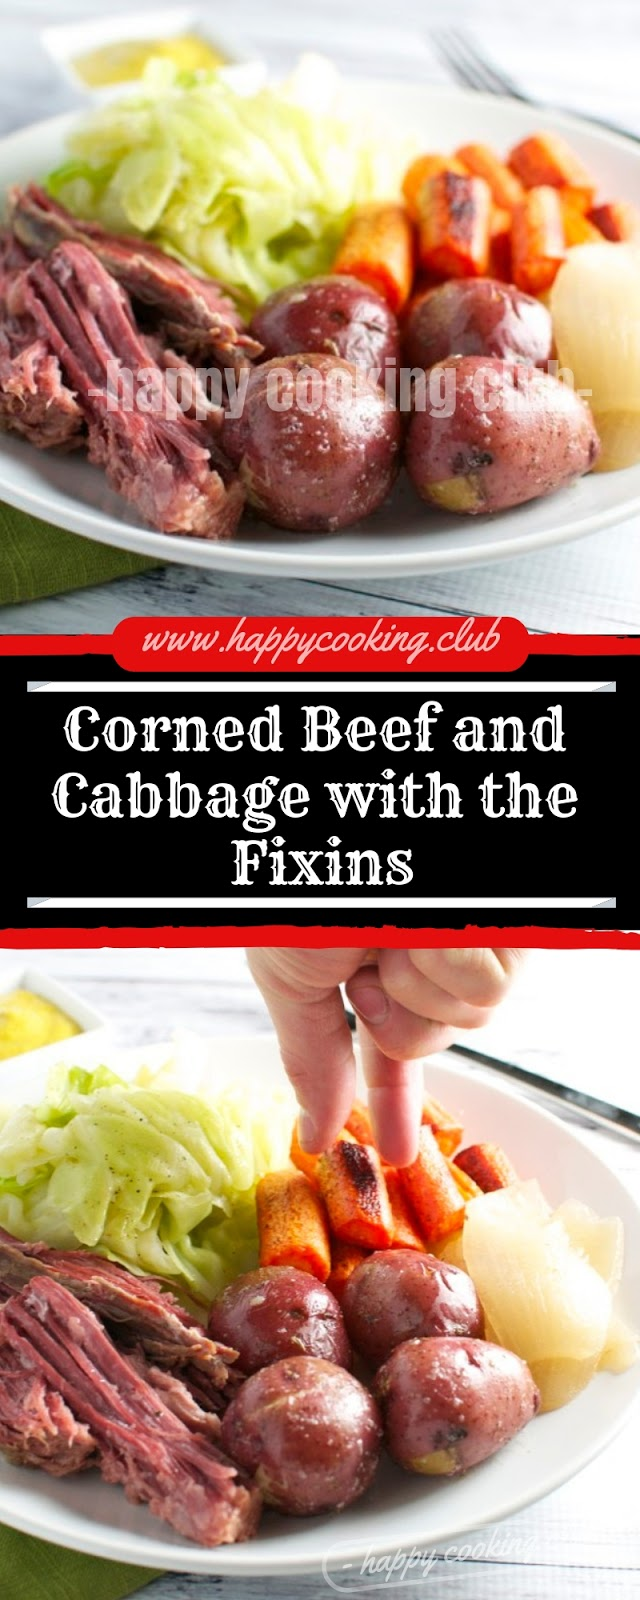 Corned Beef and Cabbage with the Fixins